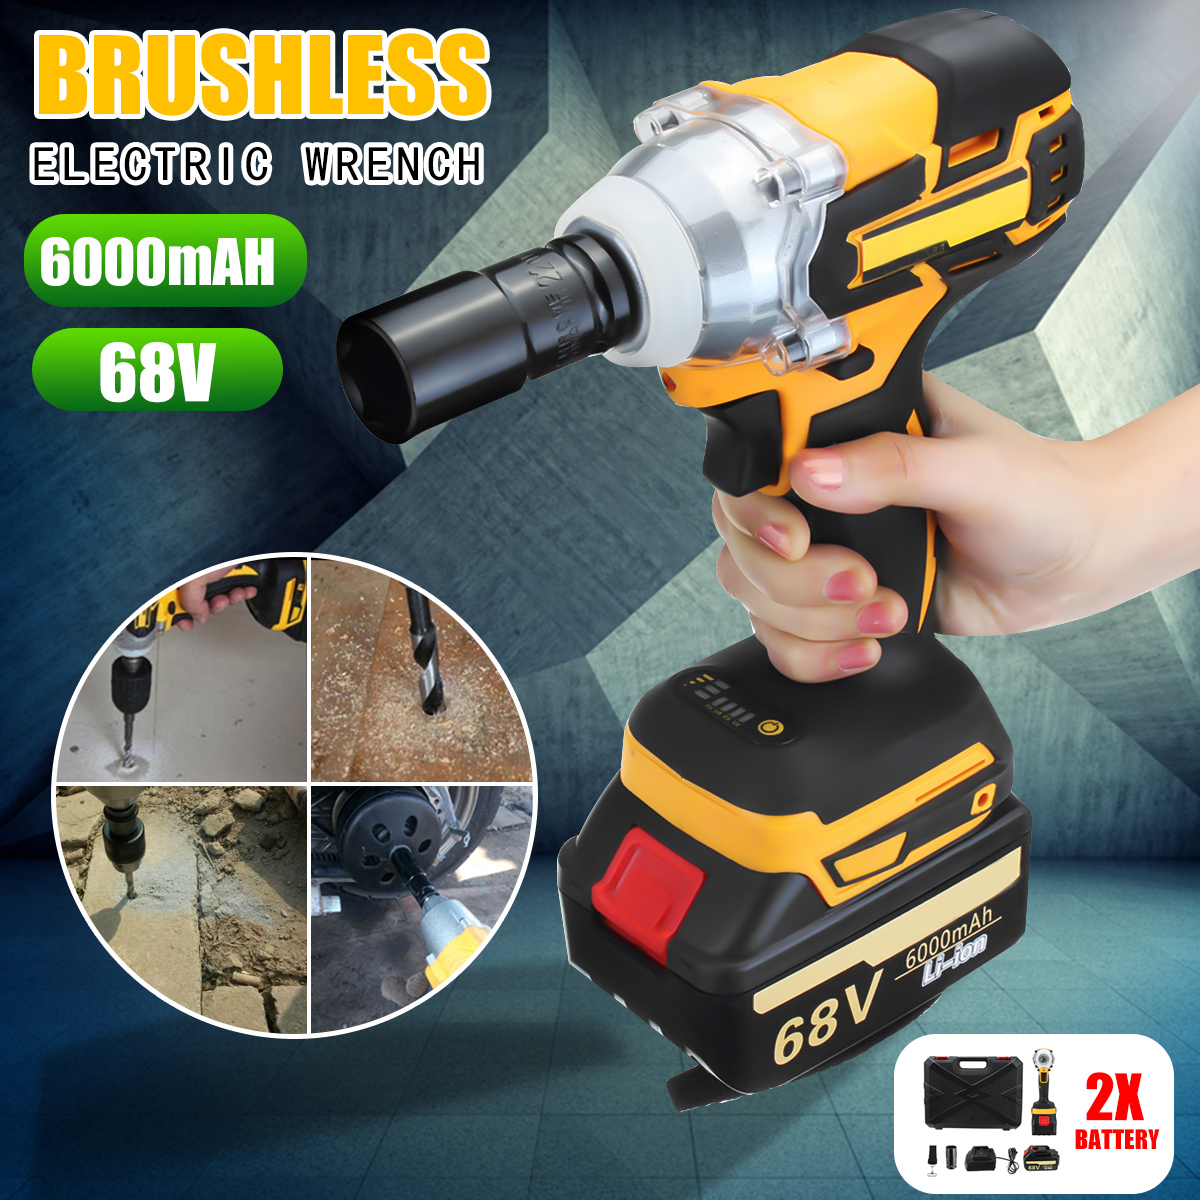 68V 88v 6000 15000mAh Impact Brushless Cordless Electric Wrench 2 Rechargeable Extra Battery 1 Charger Drive